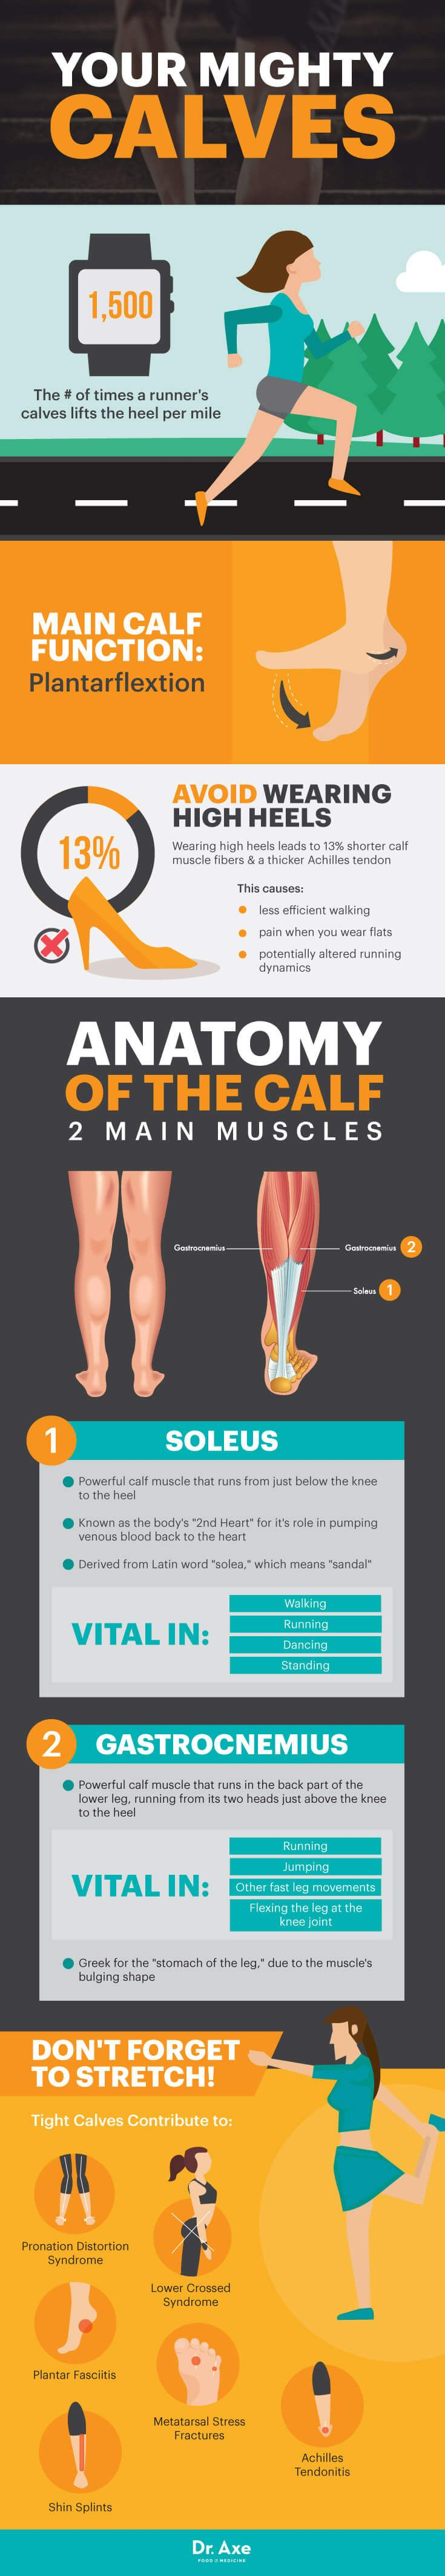 Calf exercises - Dr. Axe http://www.draxe.com #health #holistic #natural